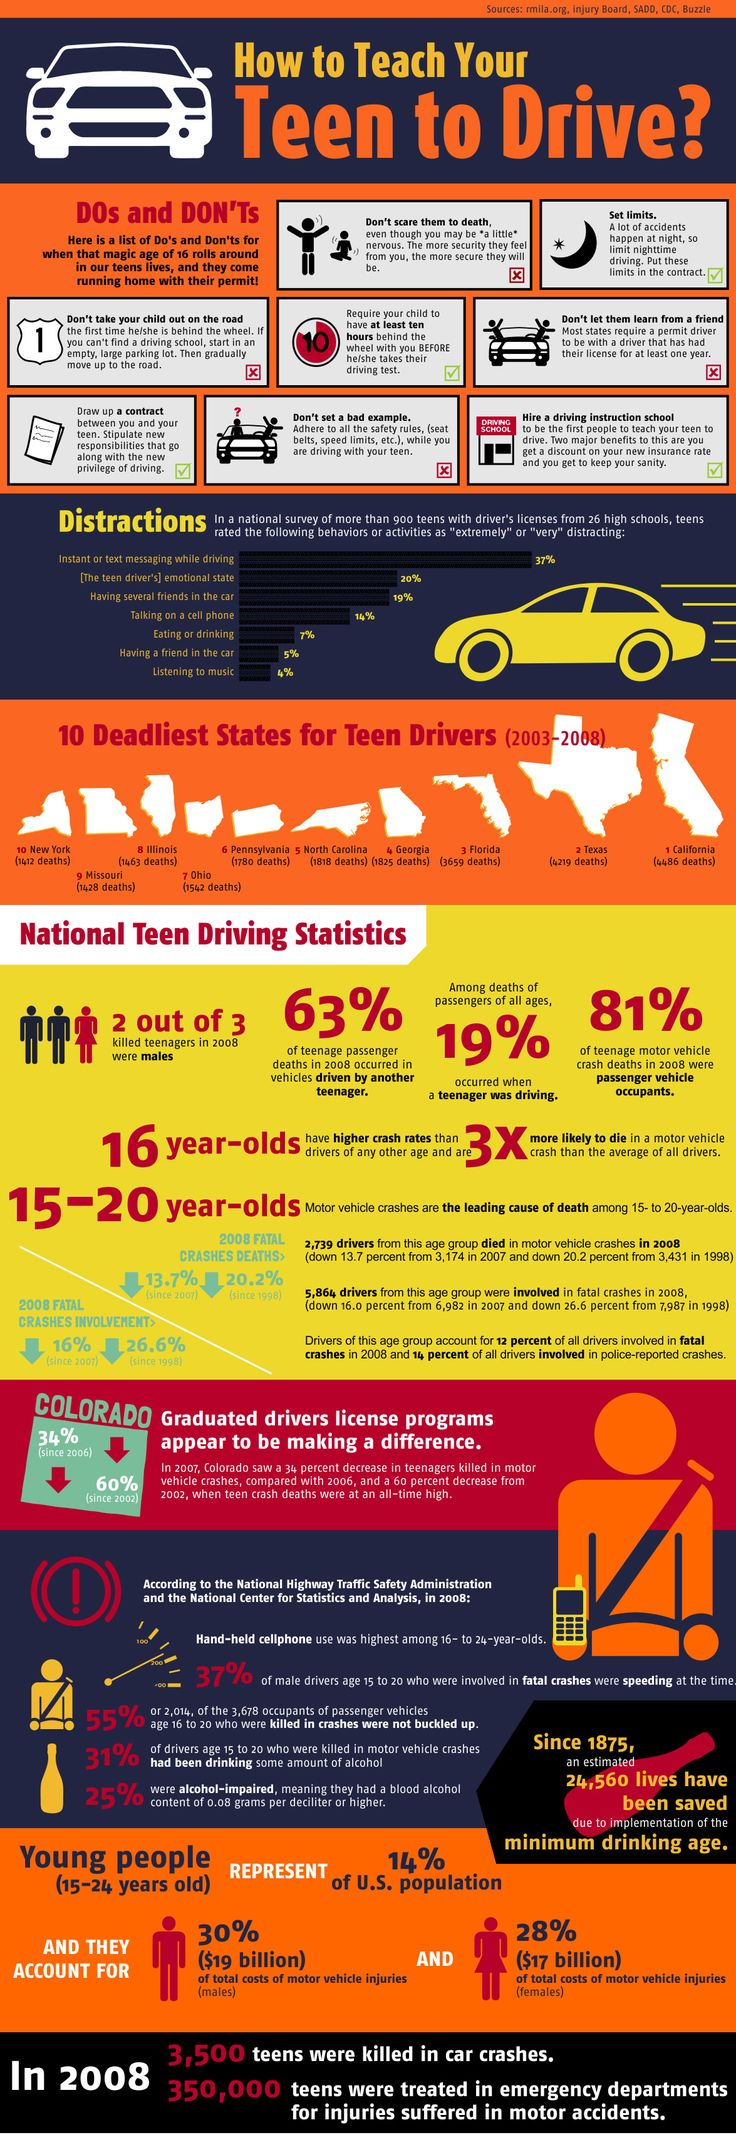 safe-teen-driving-tips-safe